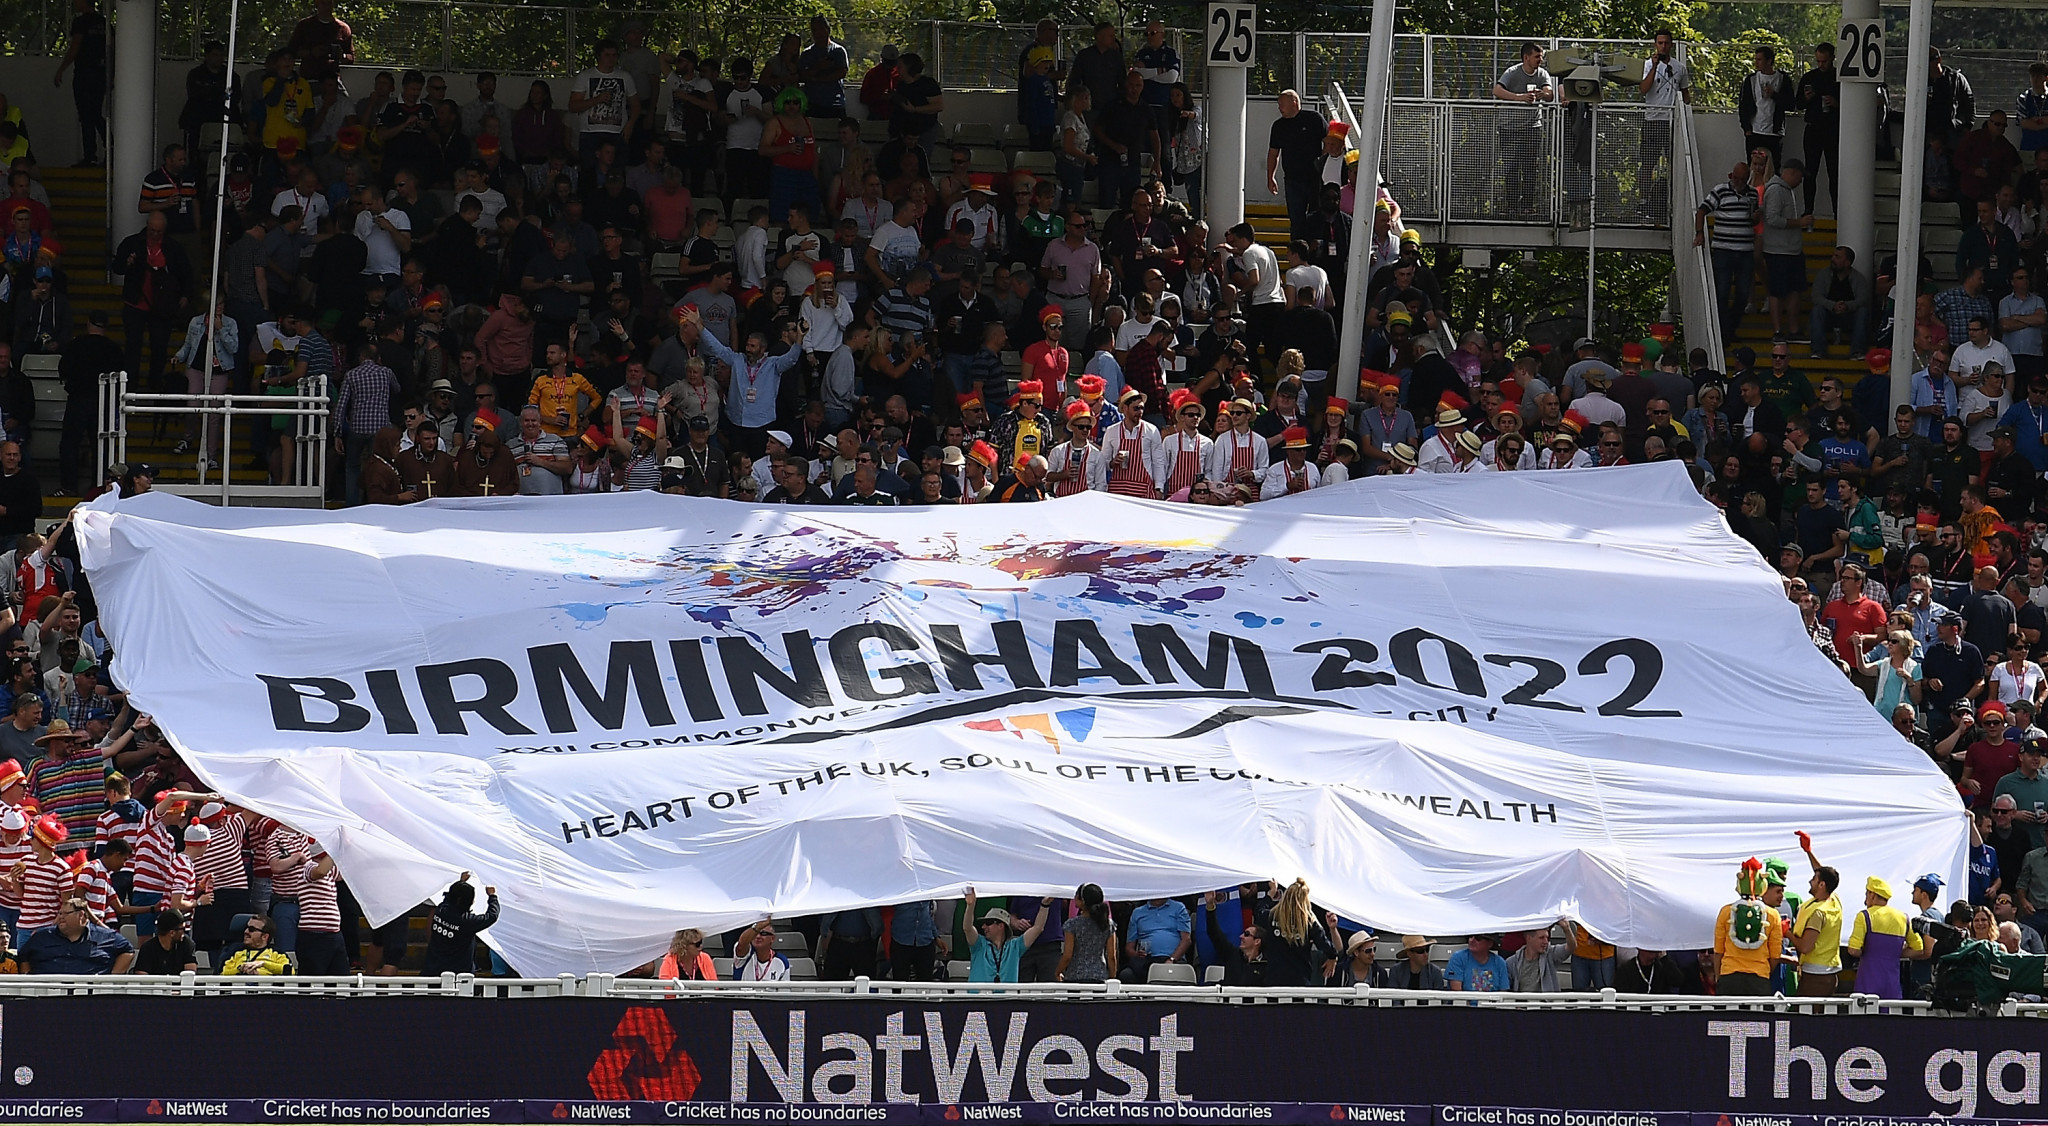 Birmingham 2022 signs contracts with local creative and marketing firms